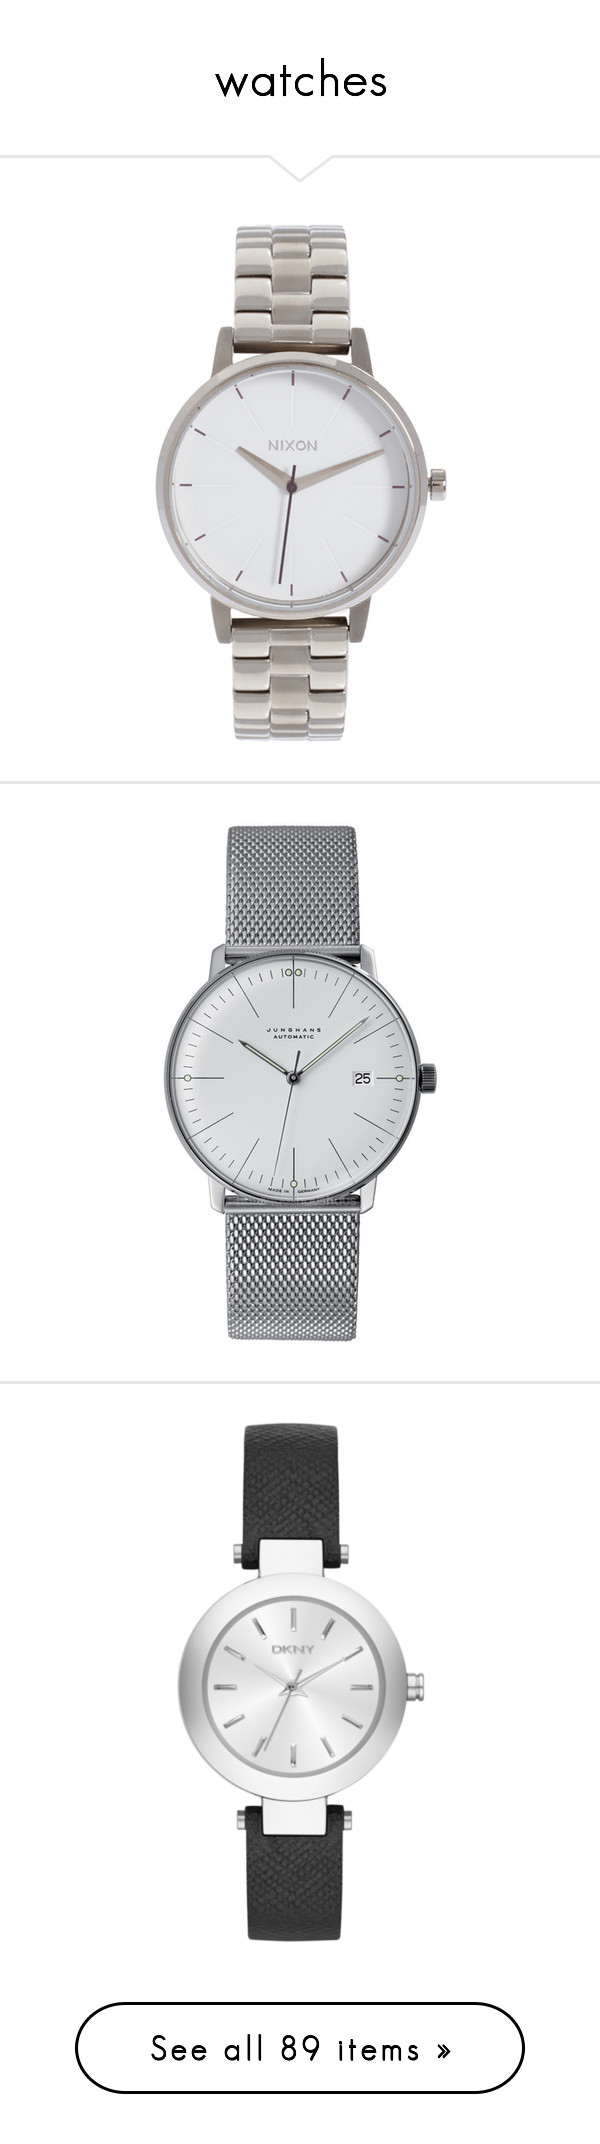 """""""watches"""" by lilybear115 ❤ liked on Polyvore featuring jewelry, watches, accessories, bezel bracelet, bracelet watches, silver jewellery, bracelet wrist watch, silver watches, stainless steel watches and wristwatches"""